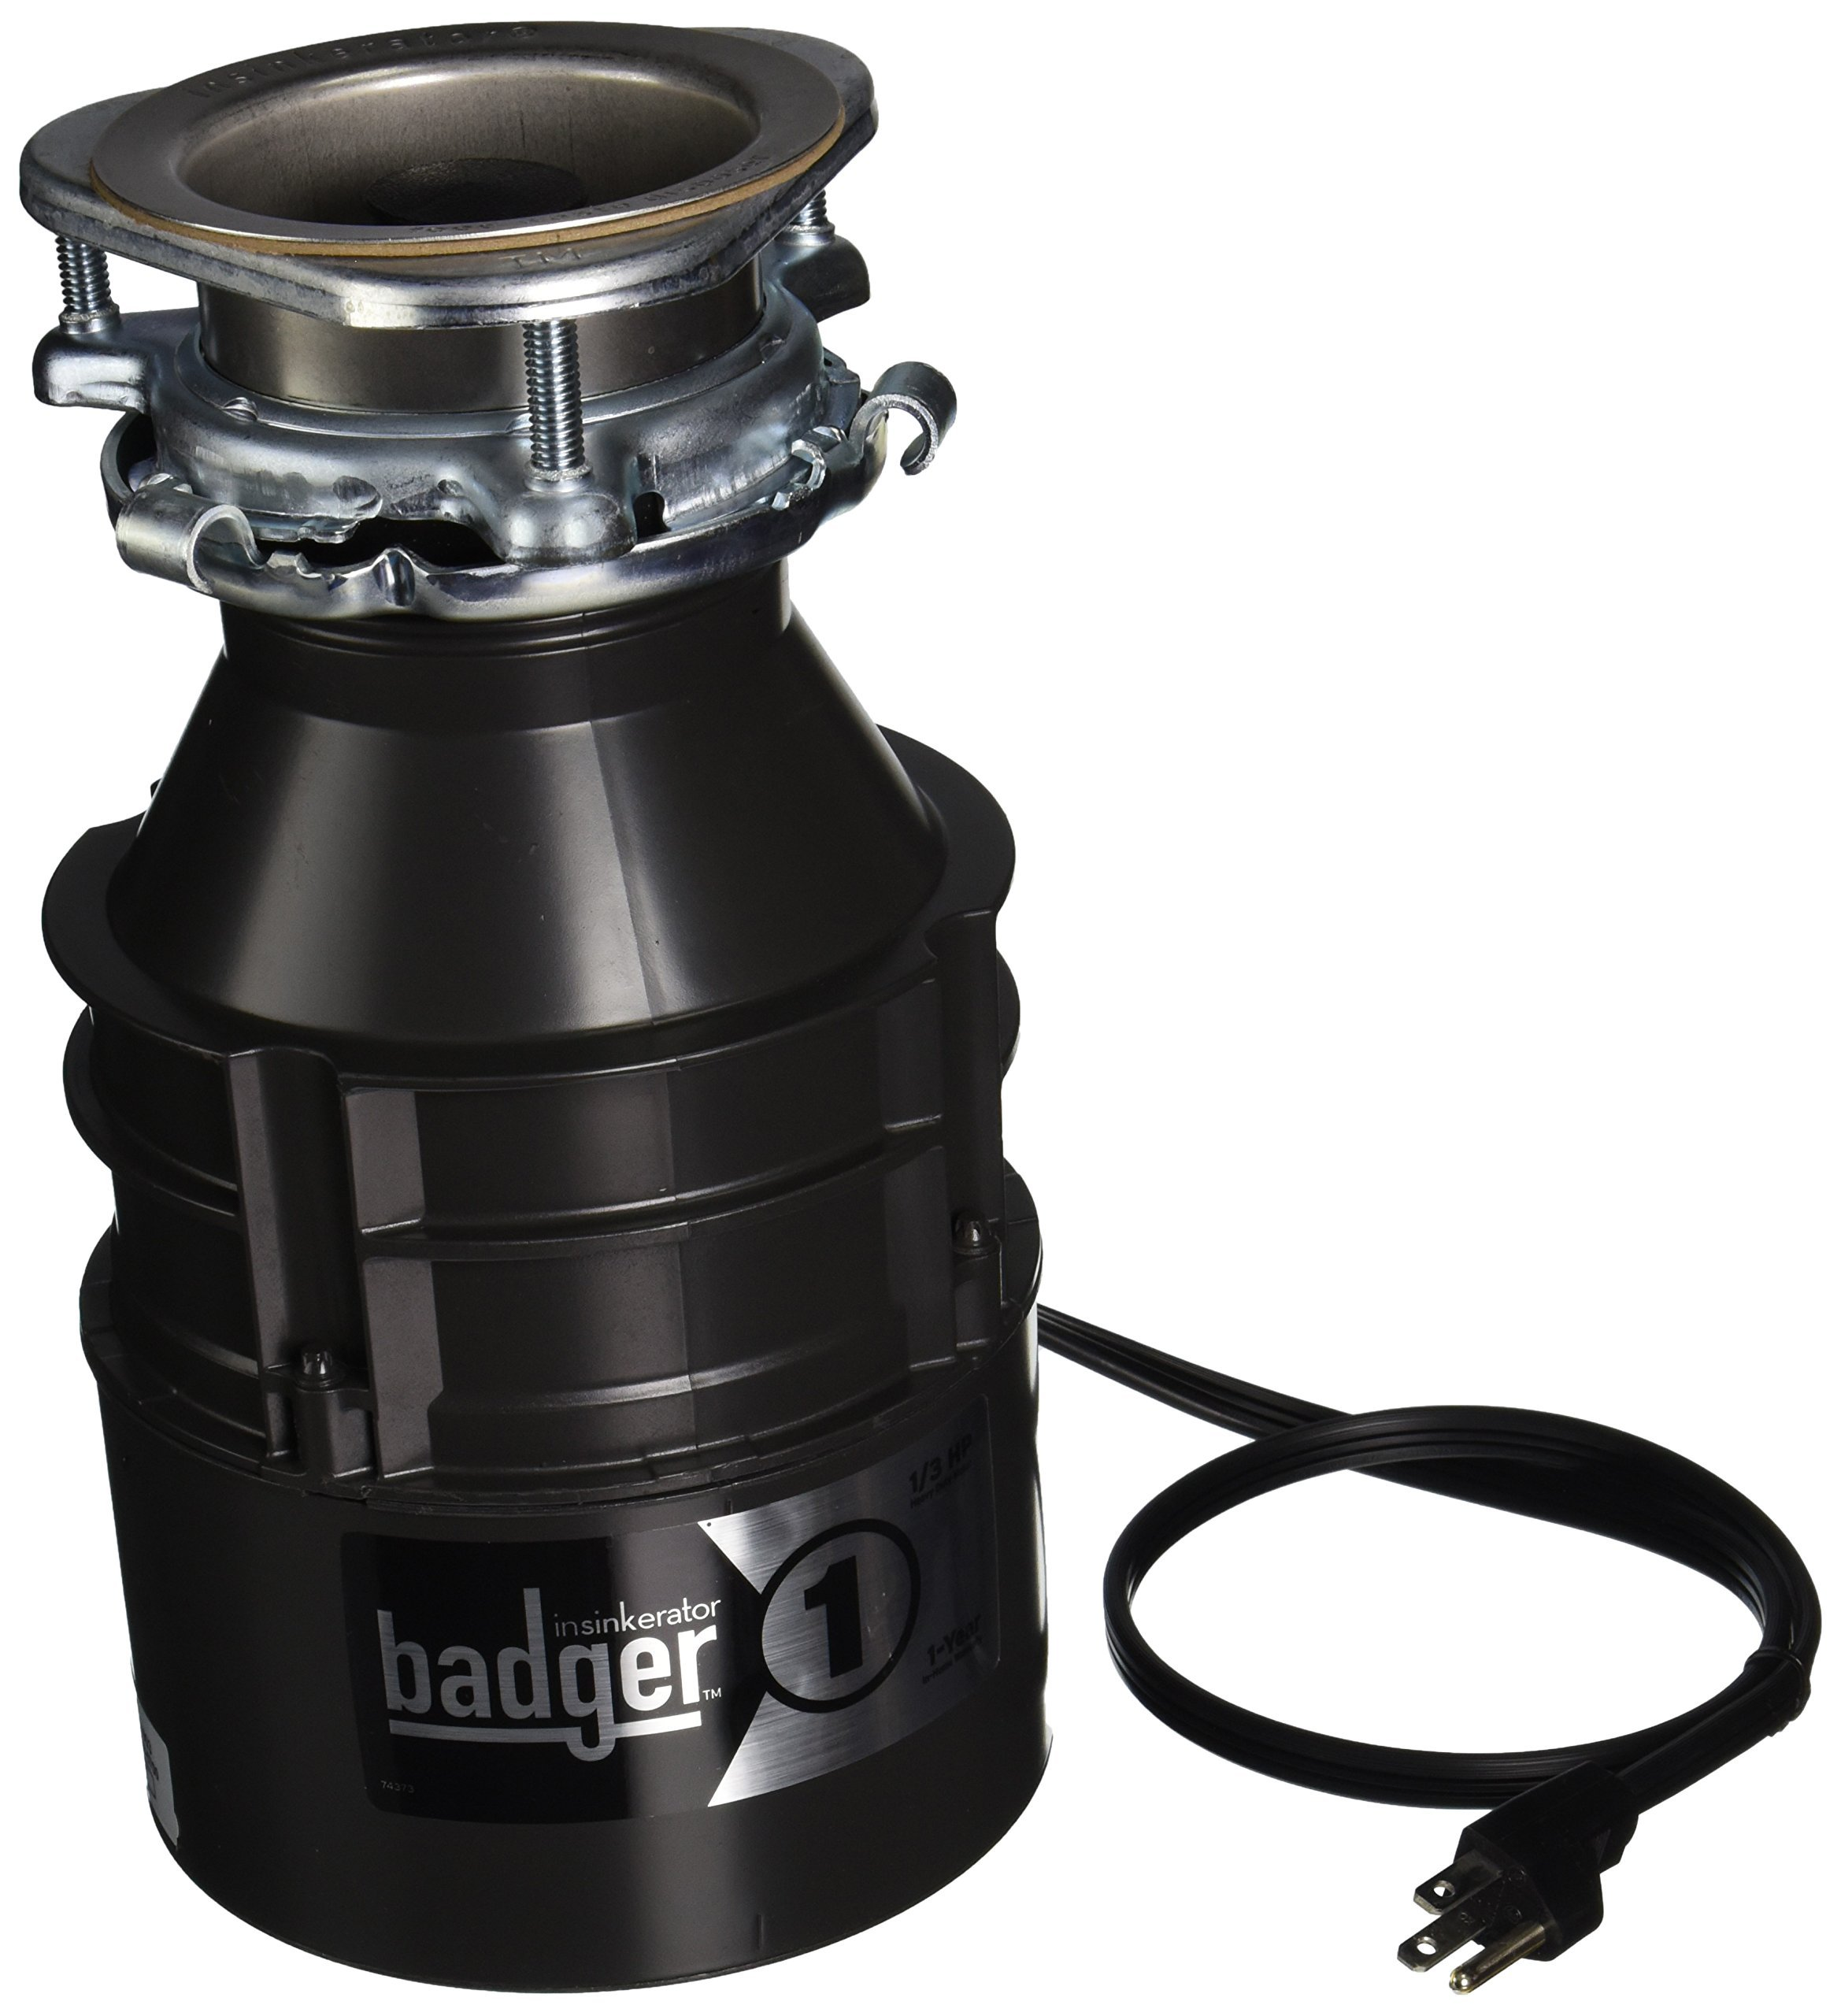 Insinkerator BADGER1CORD Household Food Waste Disposer with Cord, 1/3 Horsepower, Grey (Renewed)